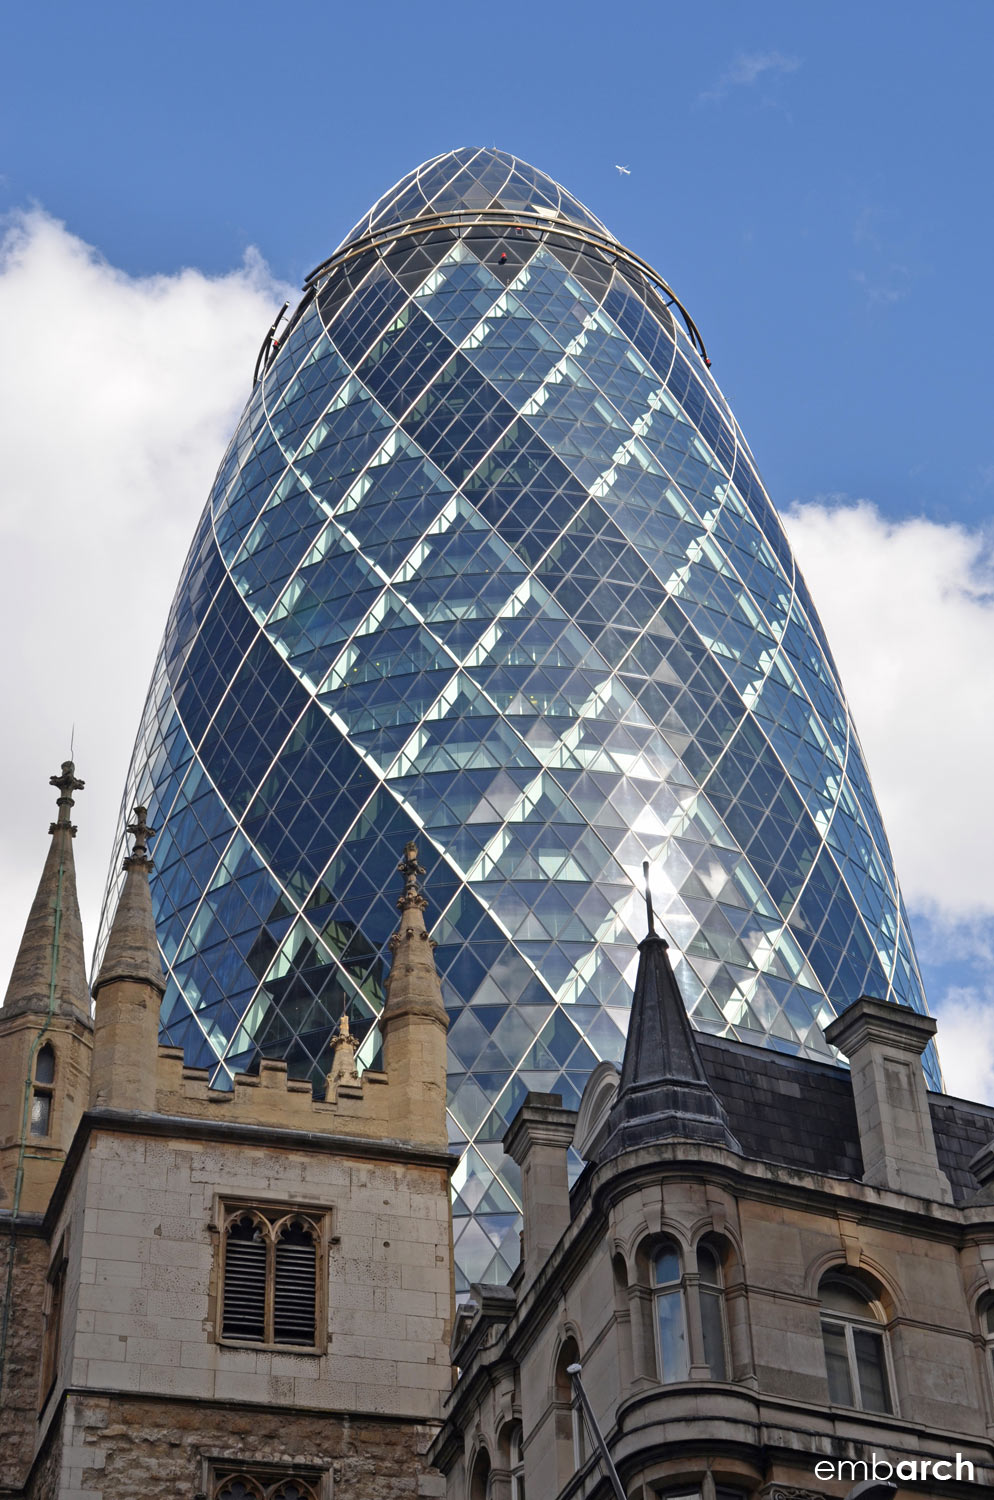 30 St. Mary's Axe - exterior view